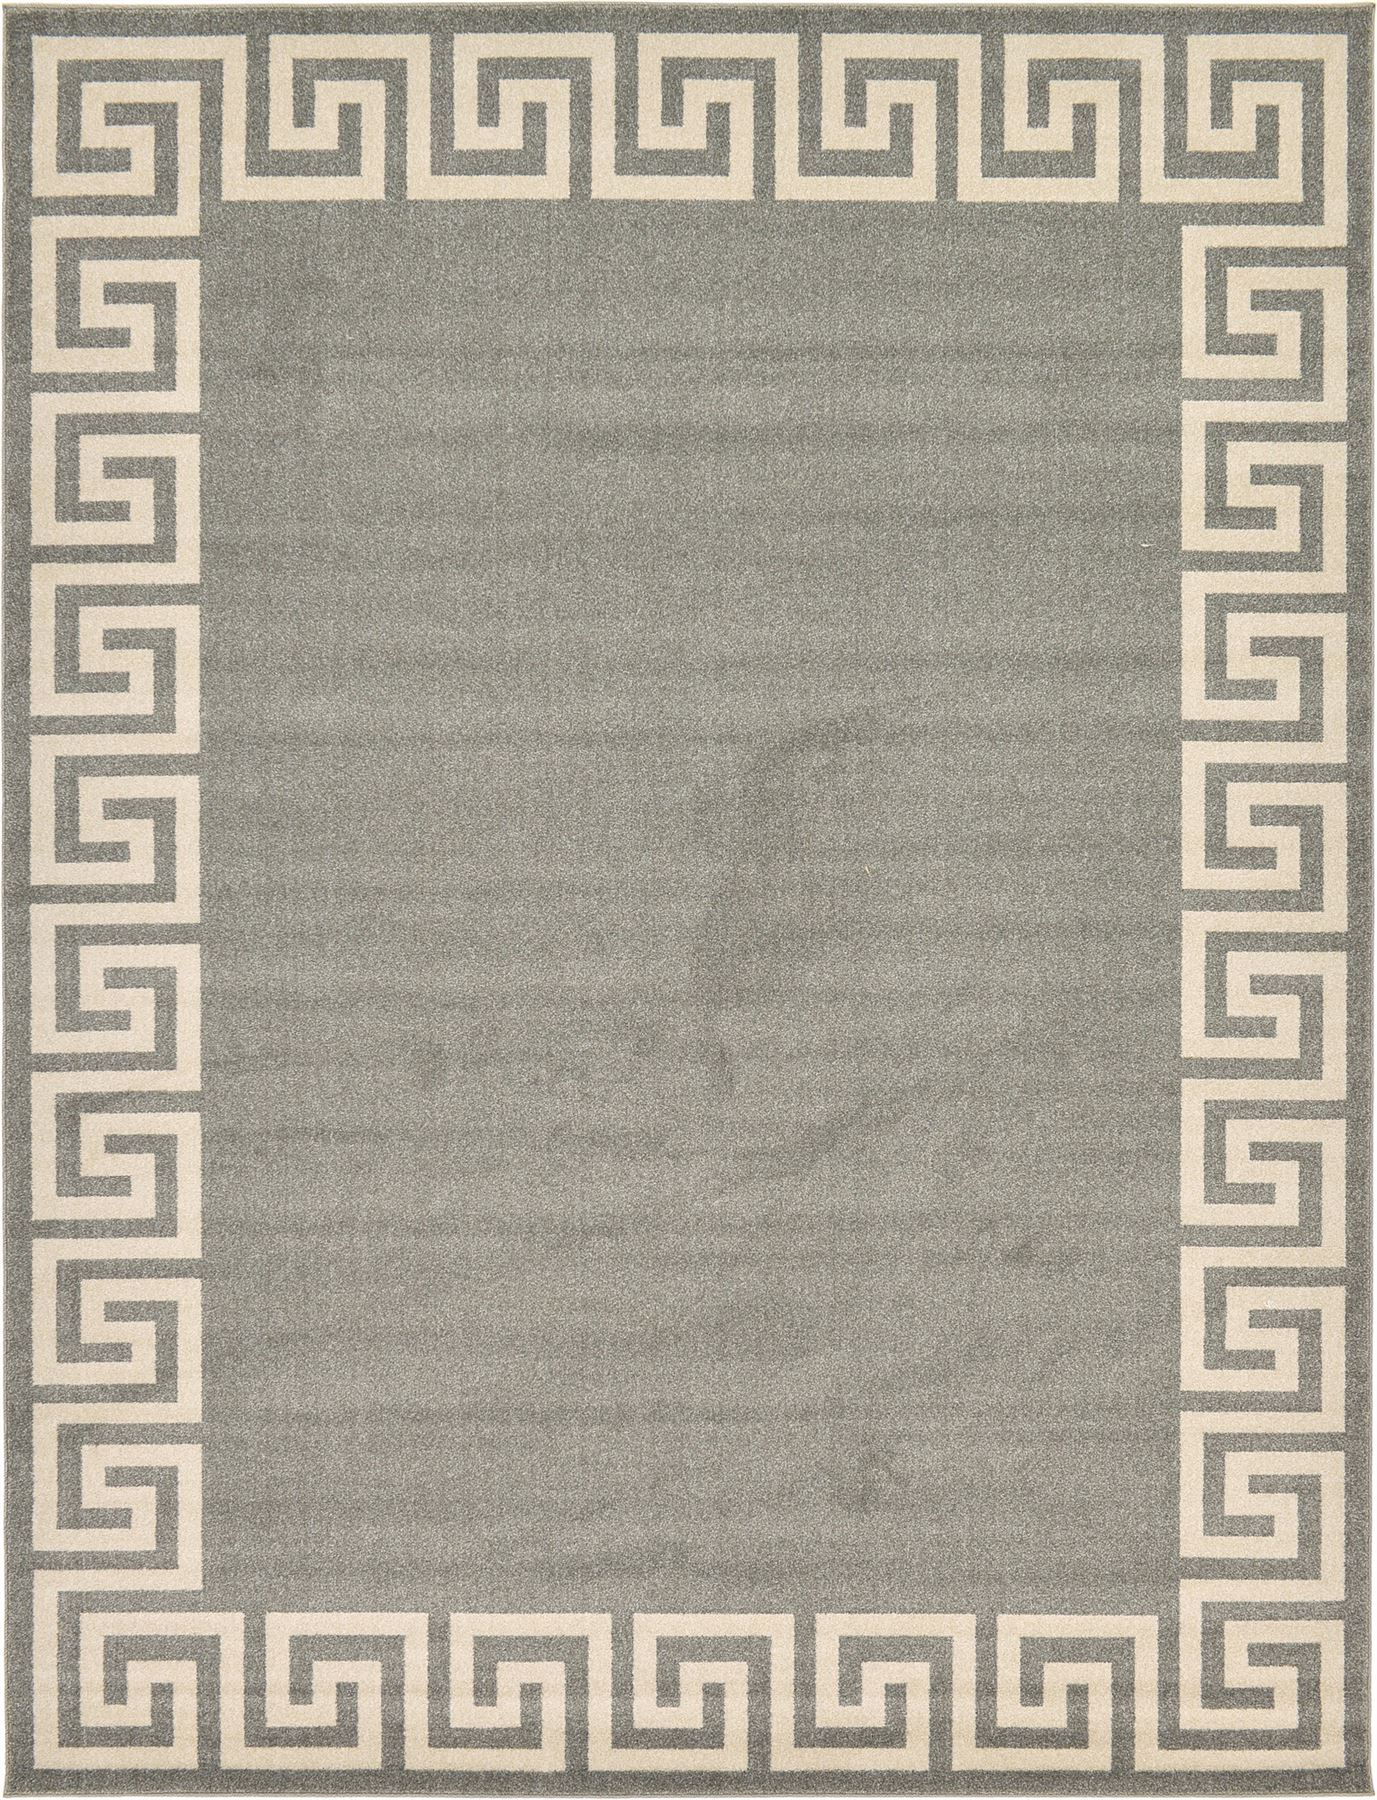 Modern Greek Design Border Area Rug Contemporary Large Soft Carpet